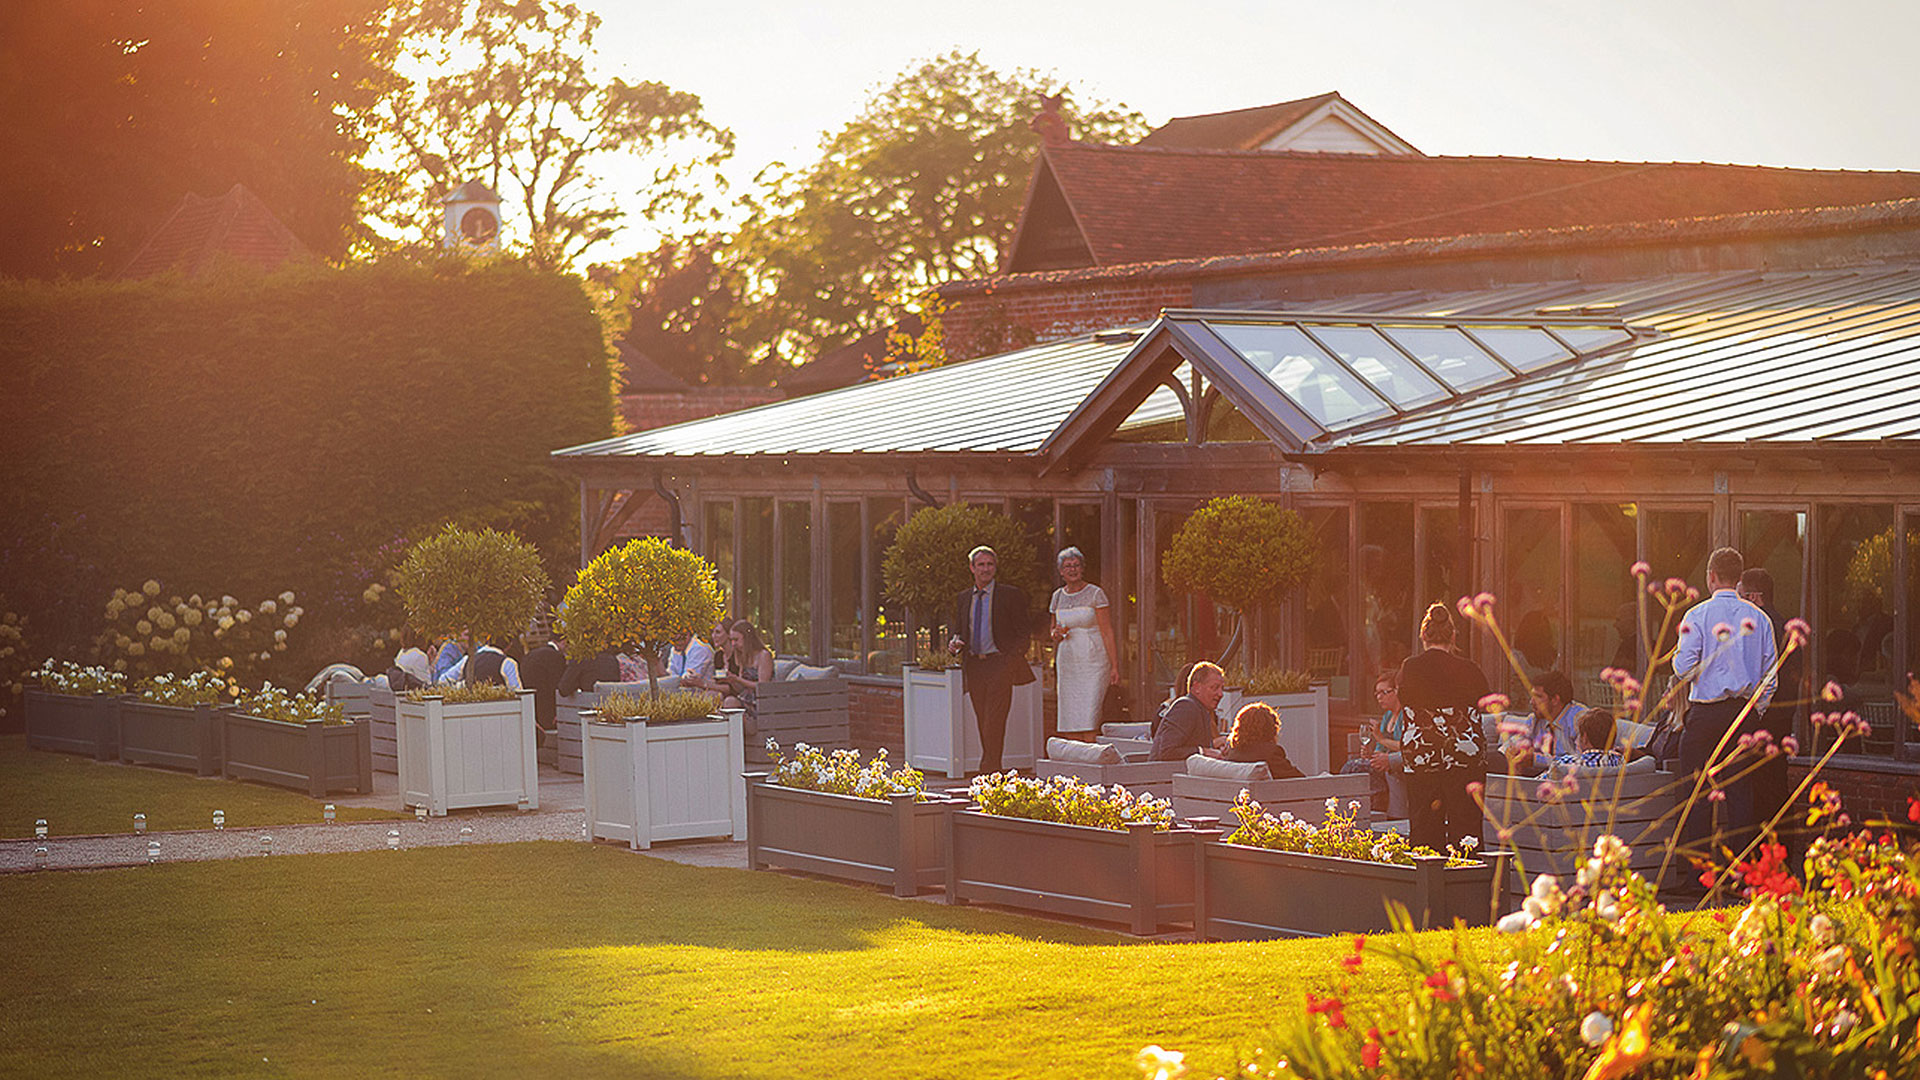 The Walled Garden and Orangery is a relaxing space for guests to enjoy a drinks wedding reception